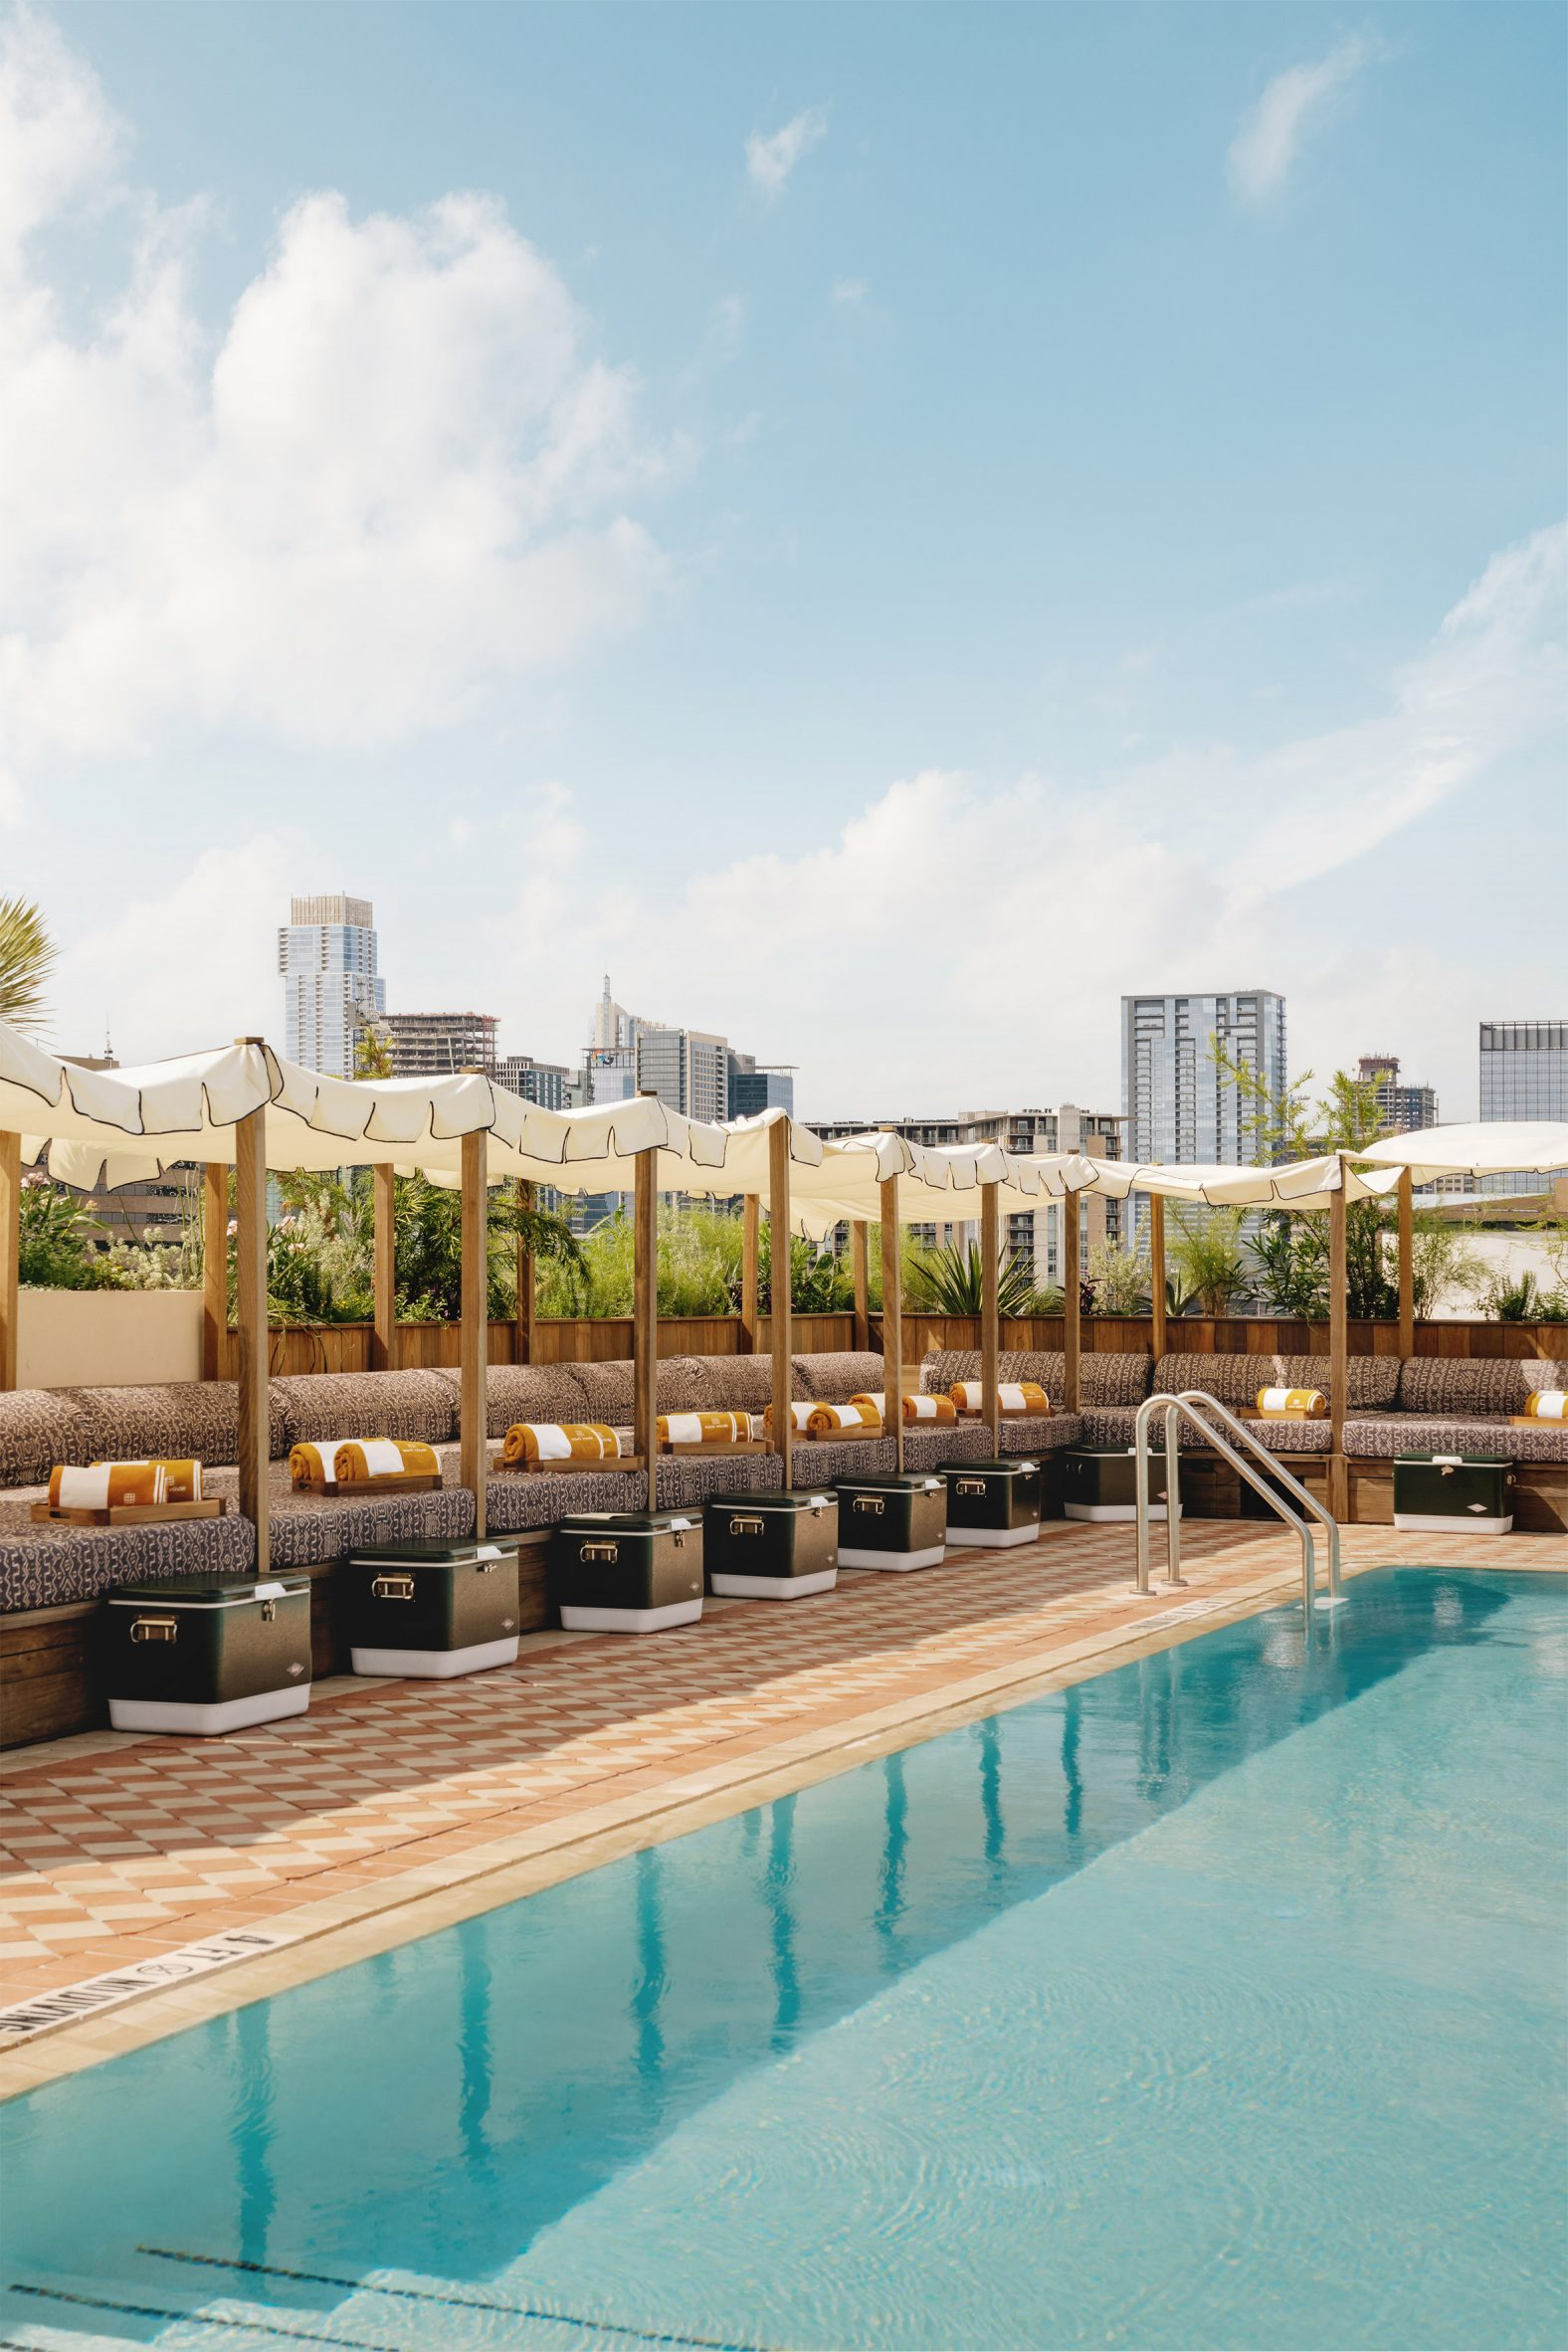 Swimming pool with Austin skyline behind